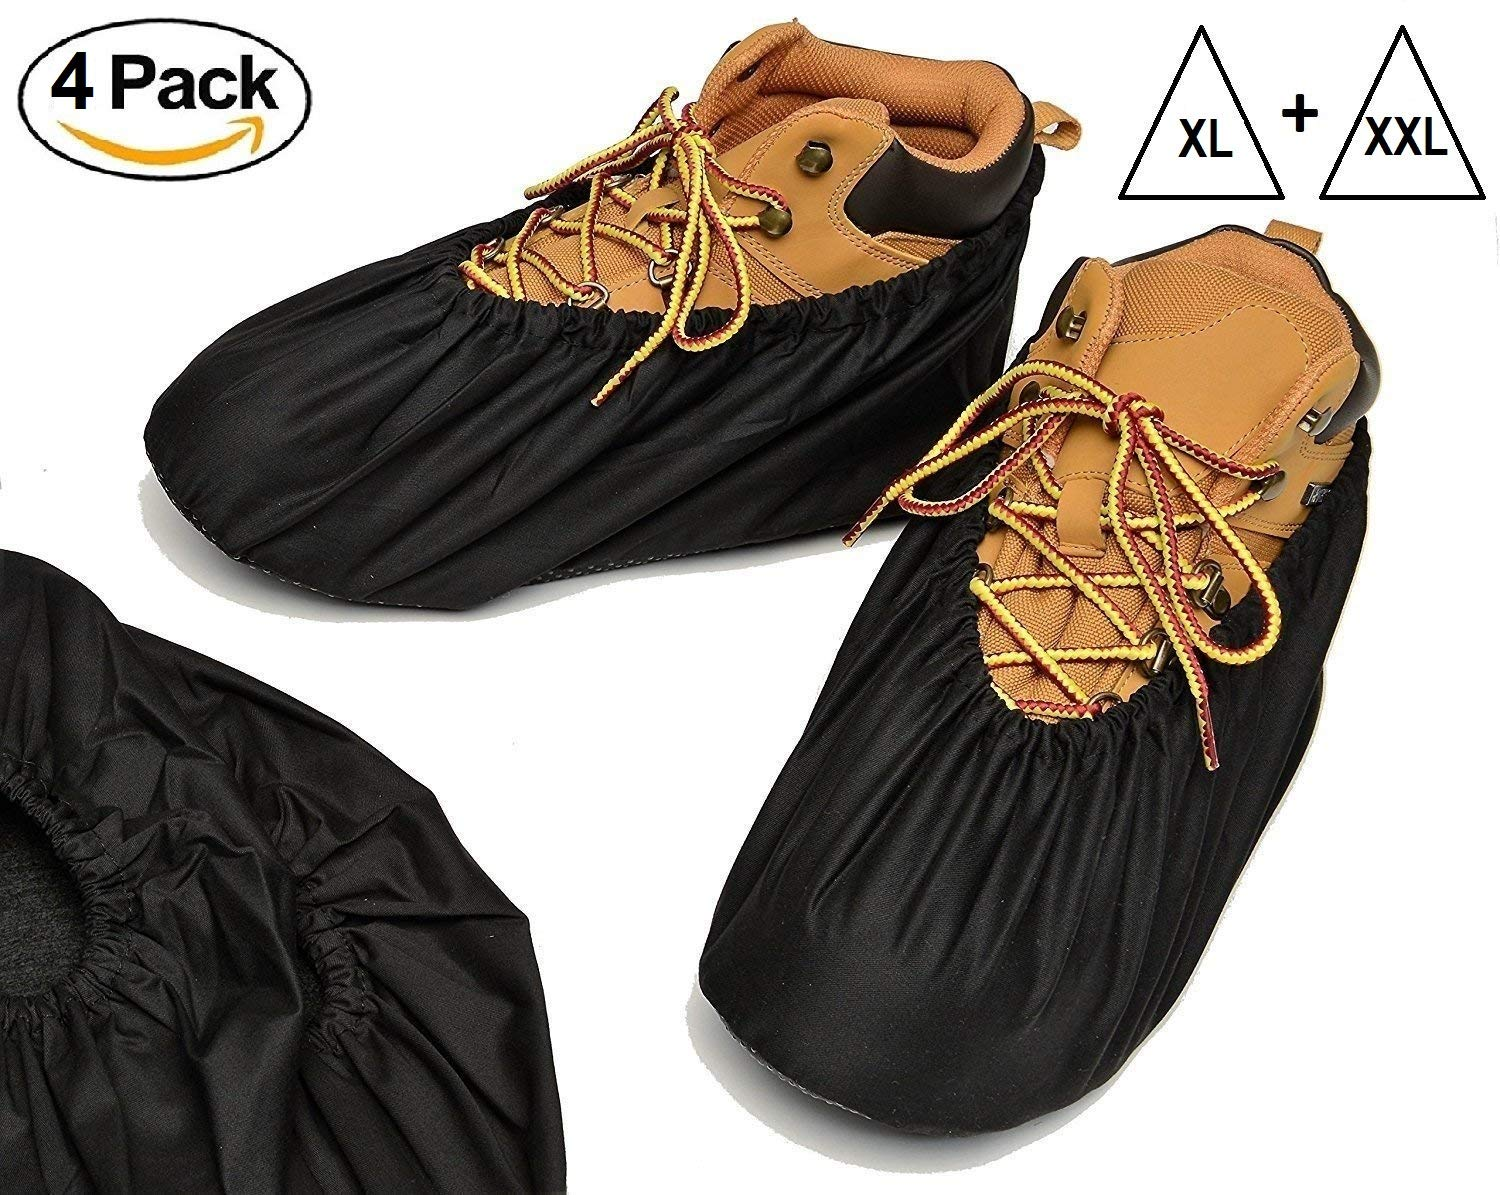 Reusable Boot and Shoe Covers - Premium Booties for Contractors Non Slip Washable | Large and Extra Large in Black (4 Pack X-Large and XX-Large)